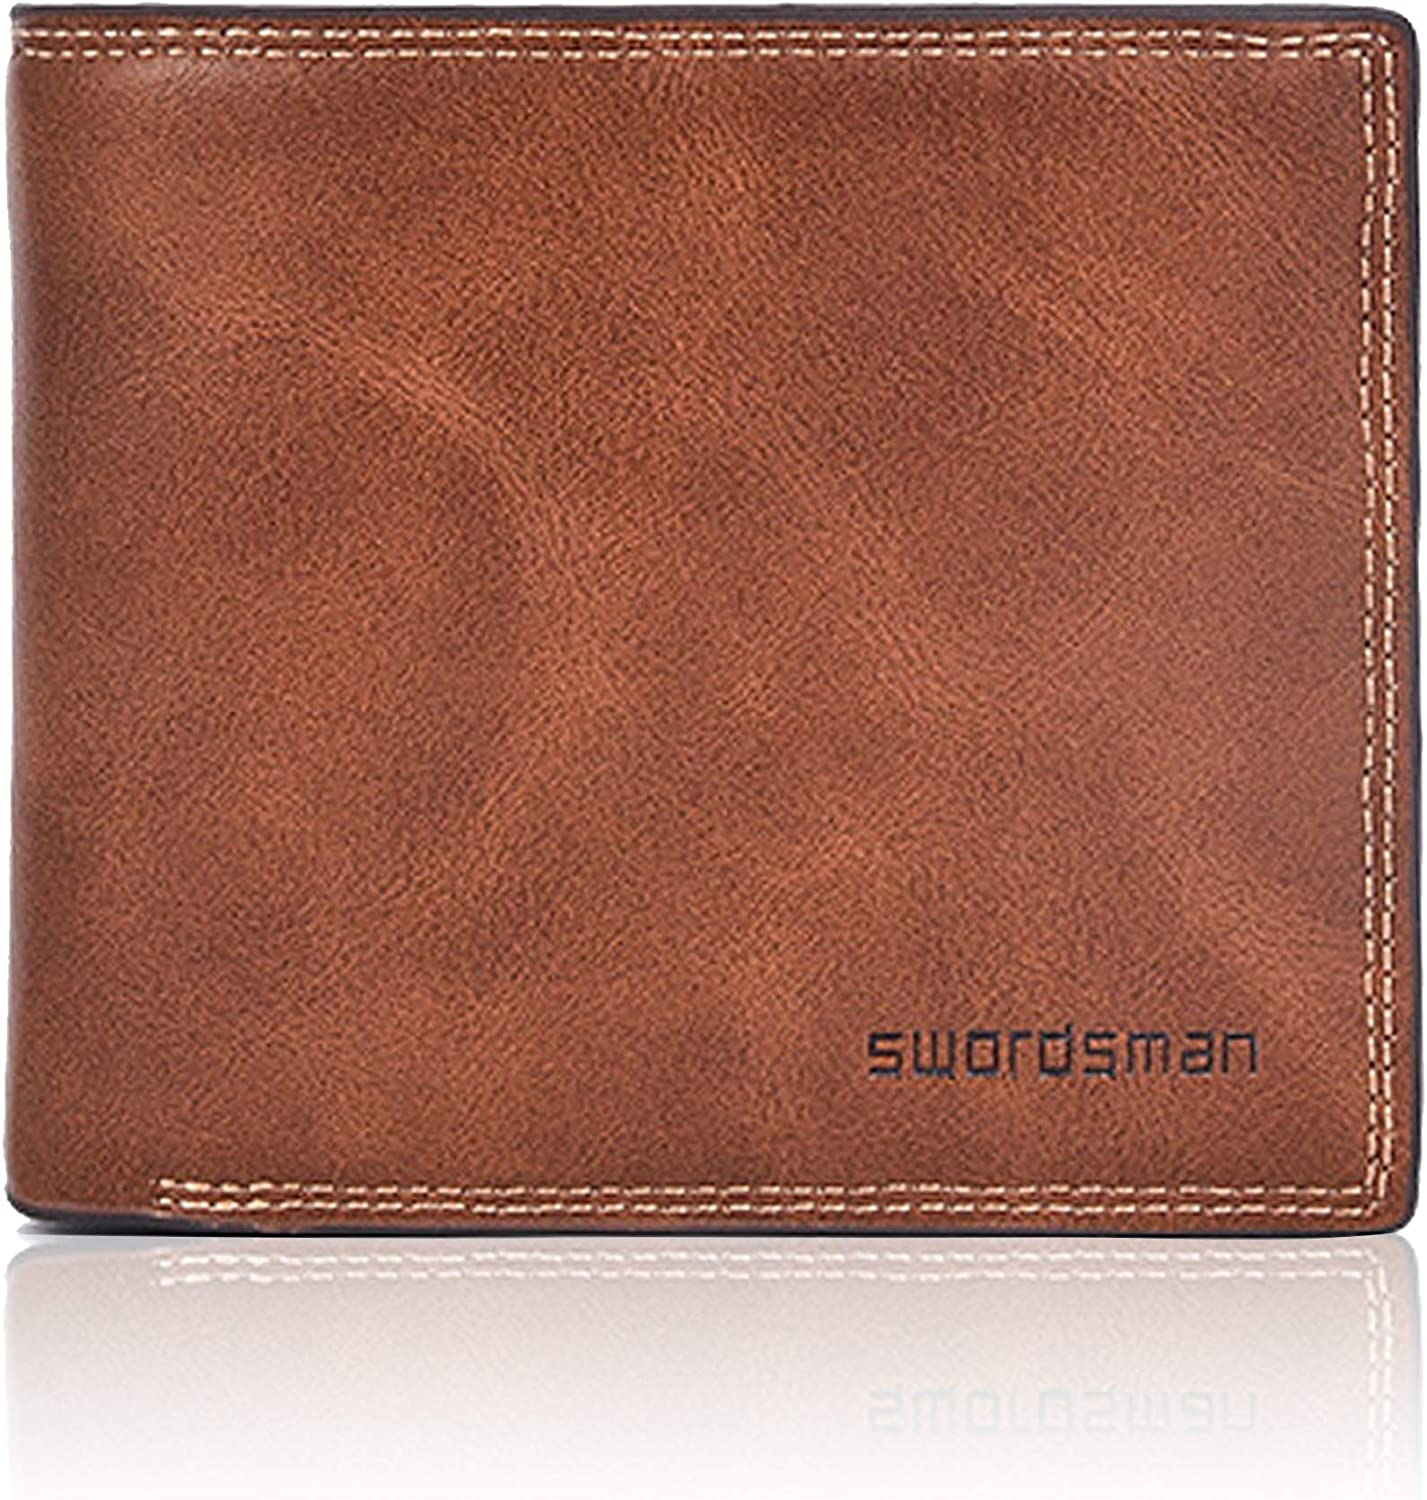 Tounuta Minimalist Wallet Leather For Men Fold Wallet Credit Card Holder Wallet Package Travel Wallet (Black) : Clothing, Shoes & Jewelry